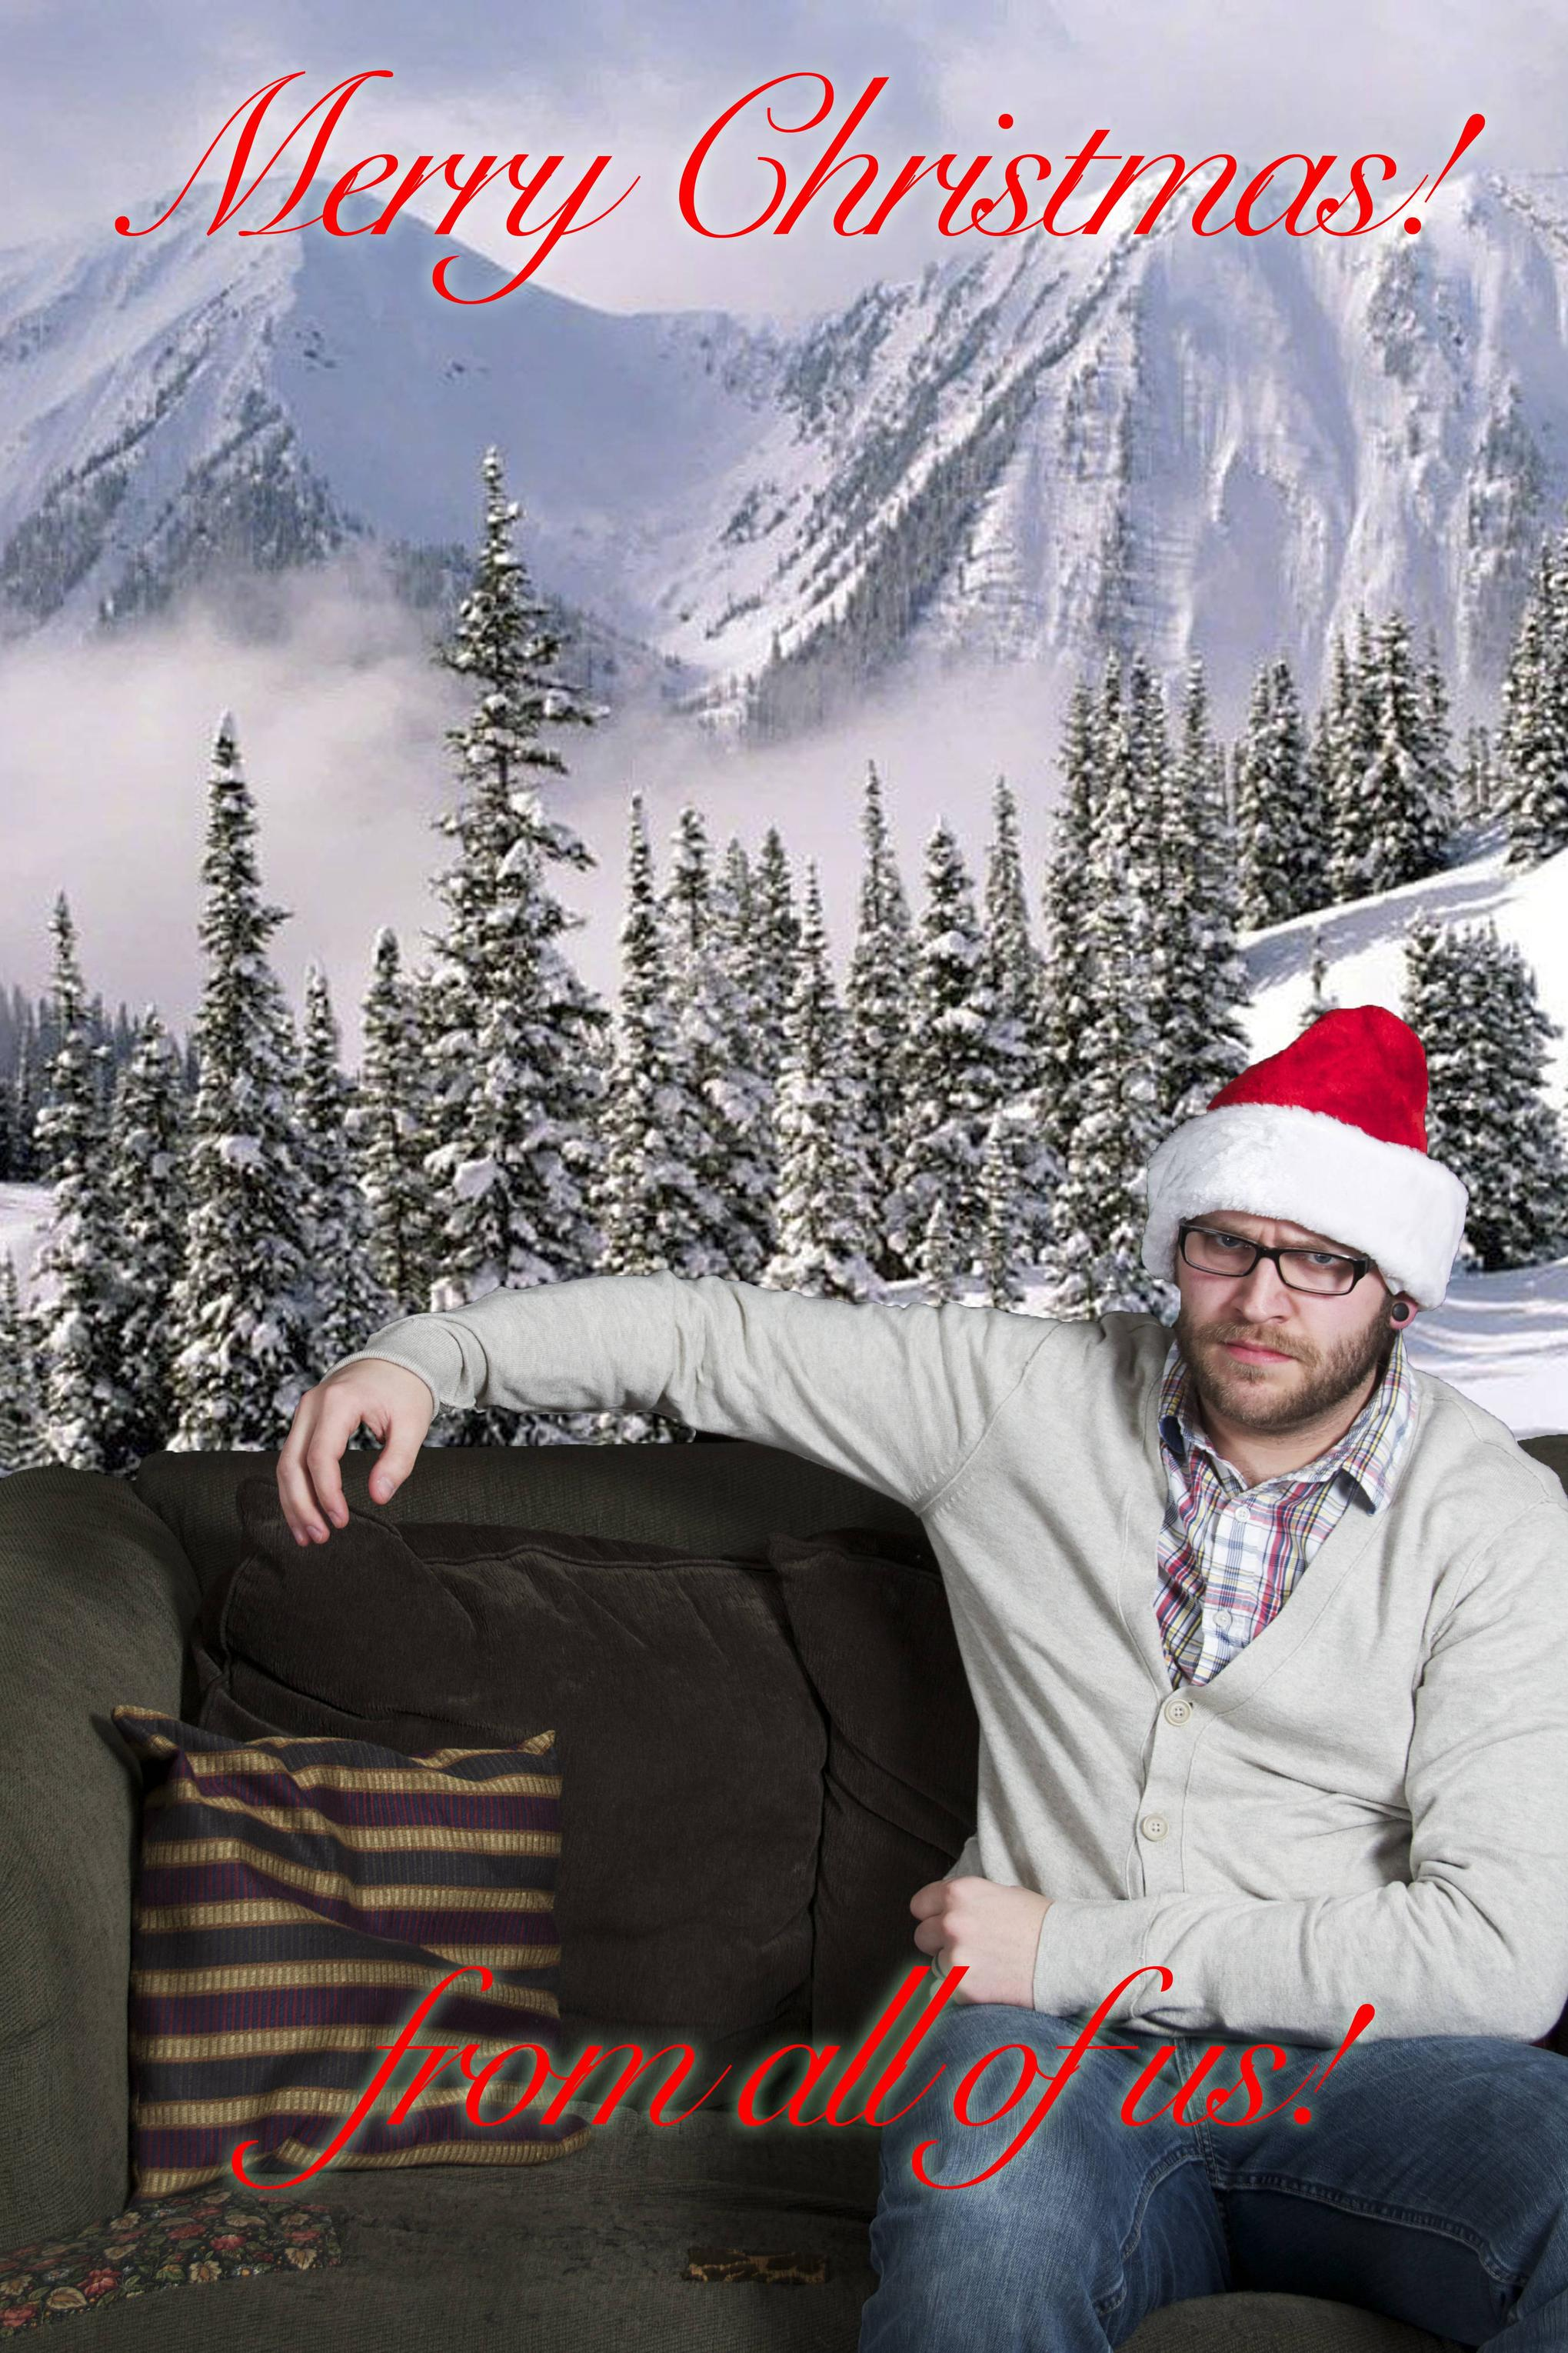 Man creates perfect Christmas card to commemorate being left by his wife.